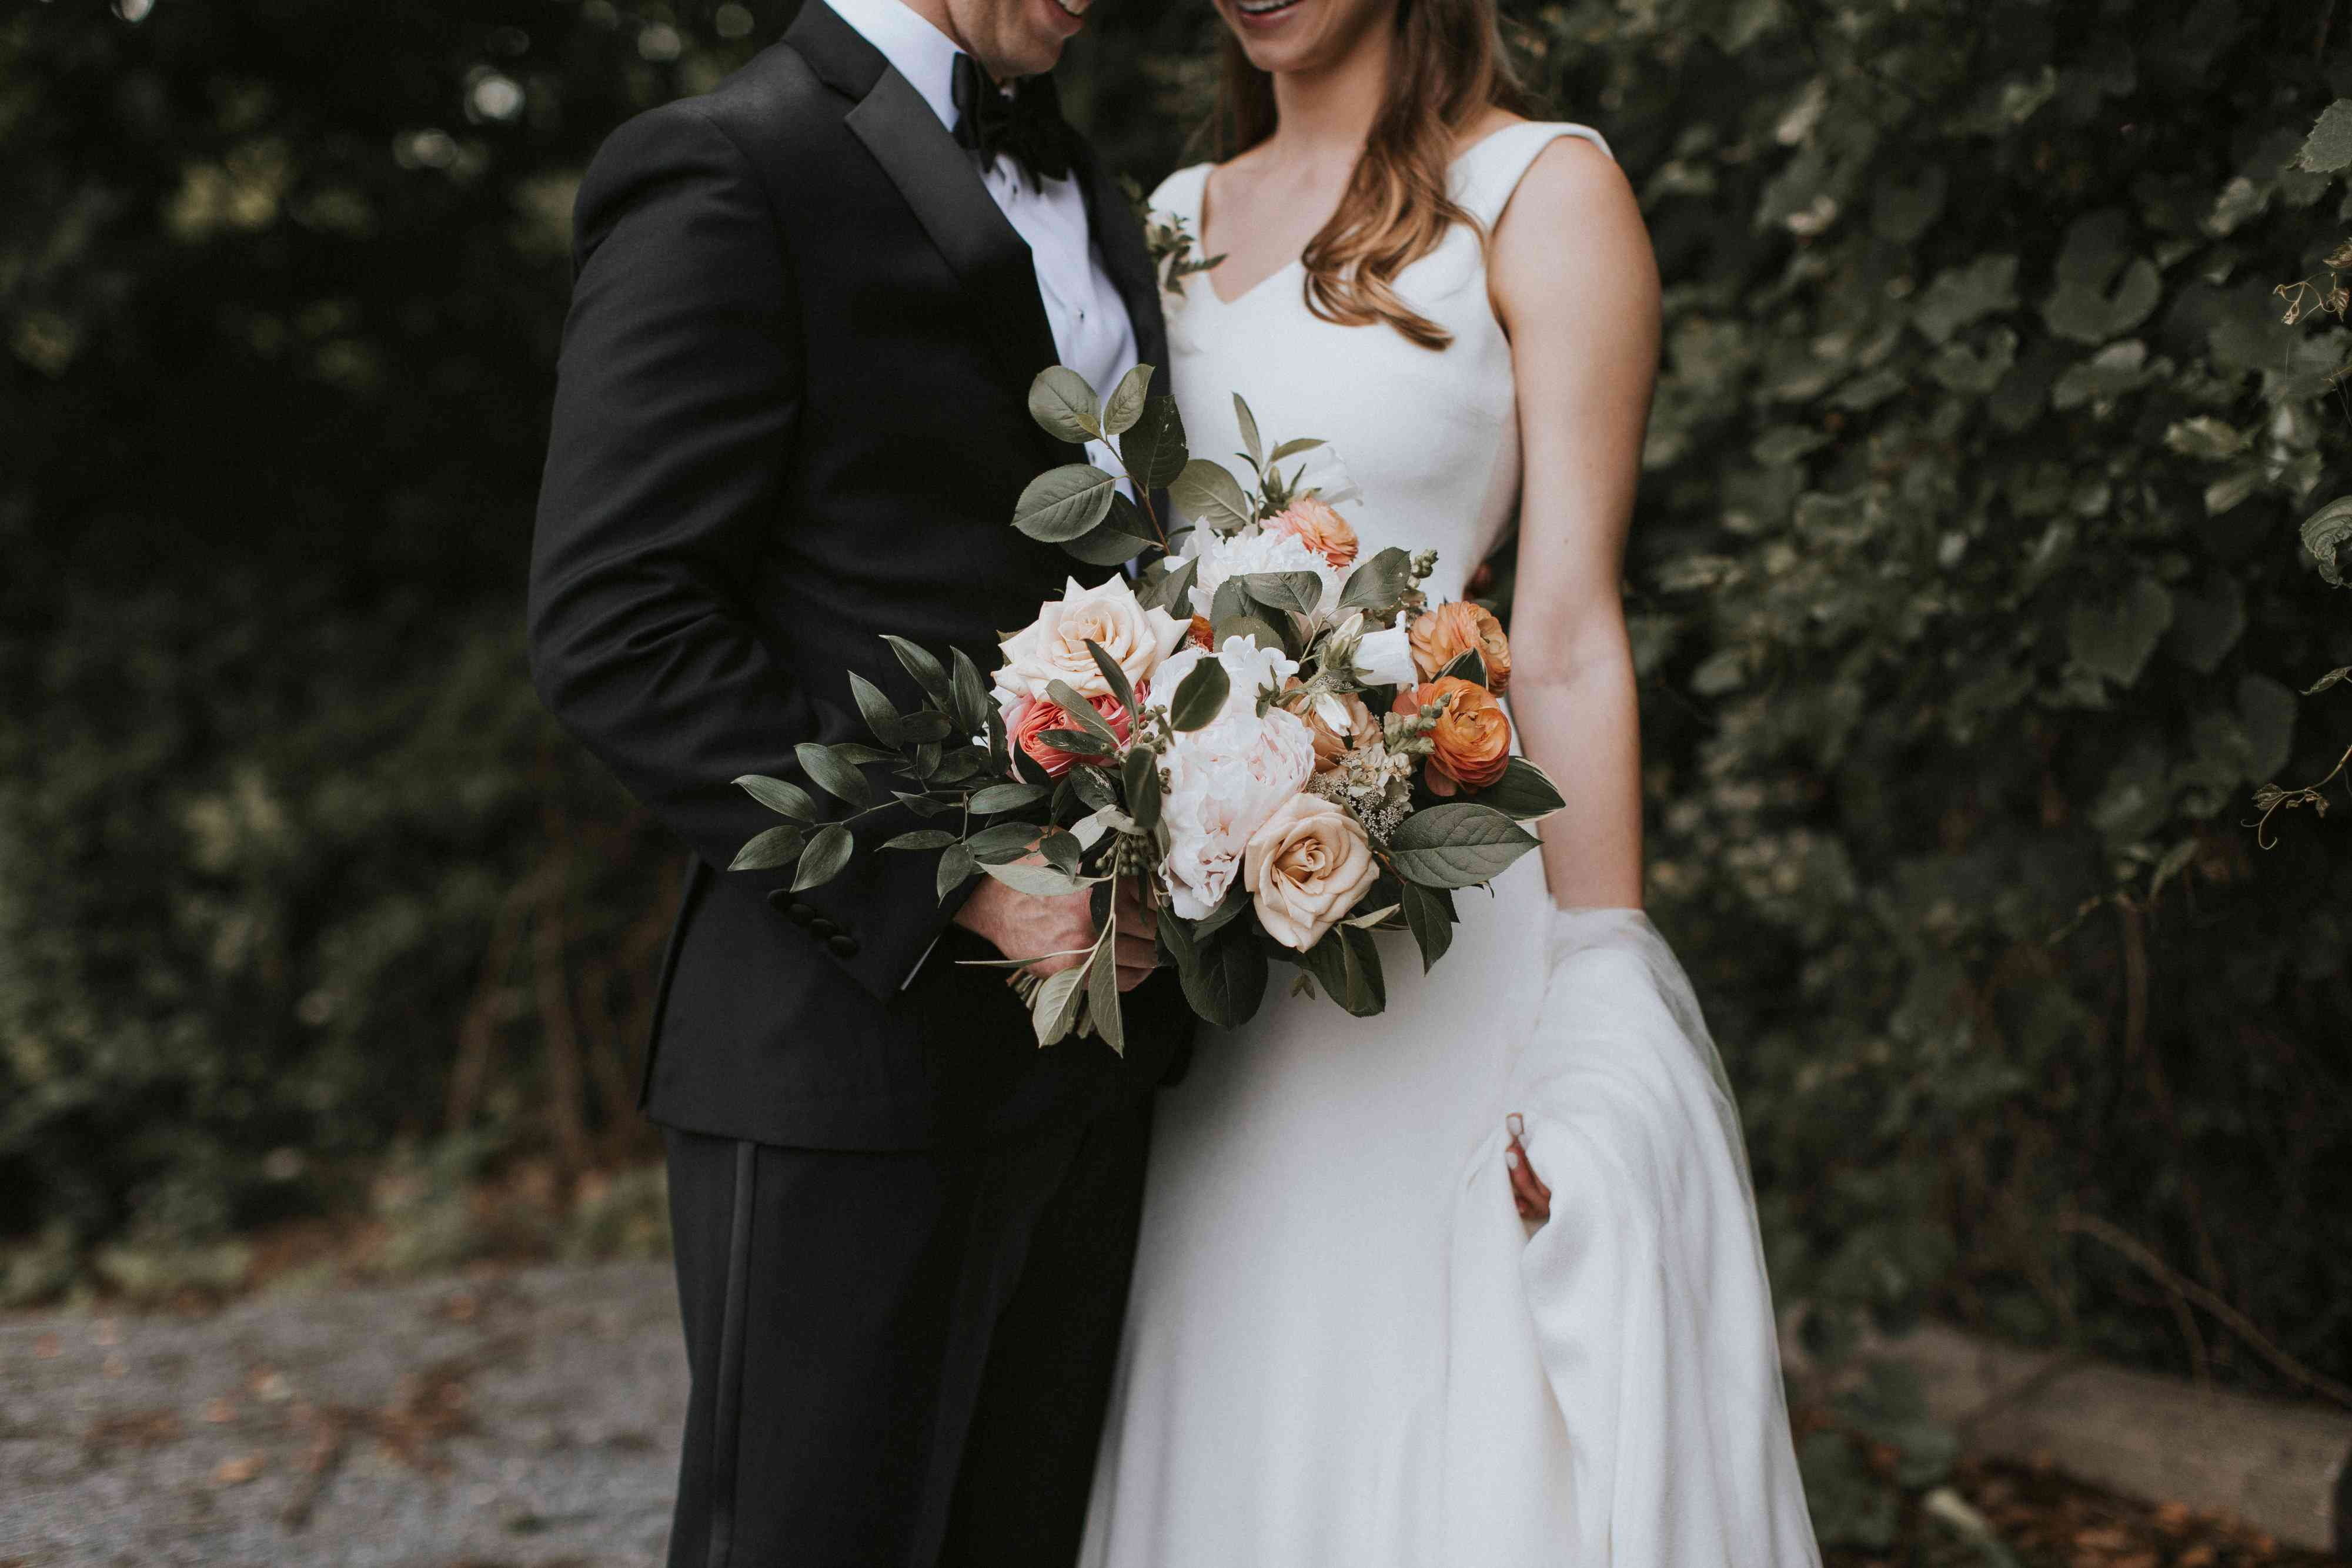 Bride and groom standing side by side holding bouquet